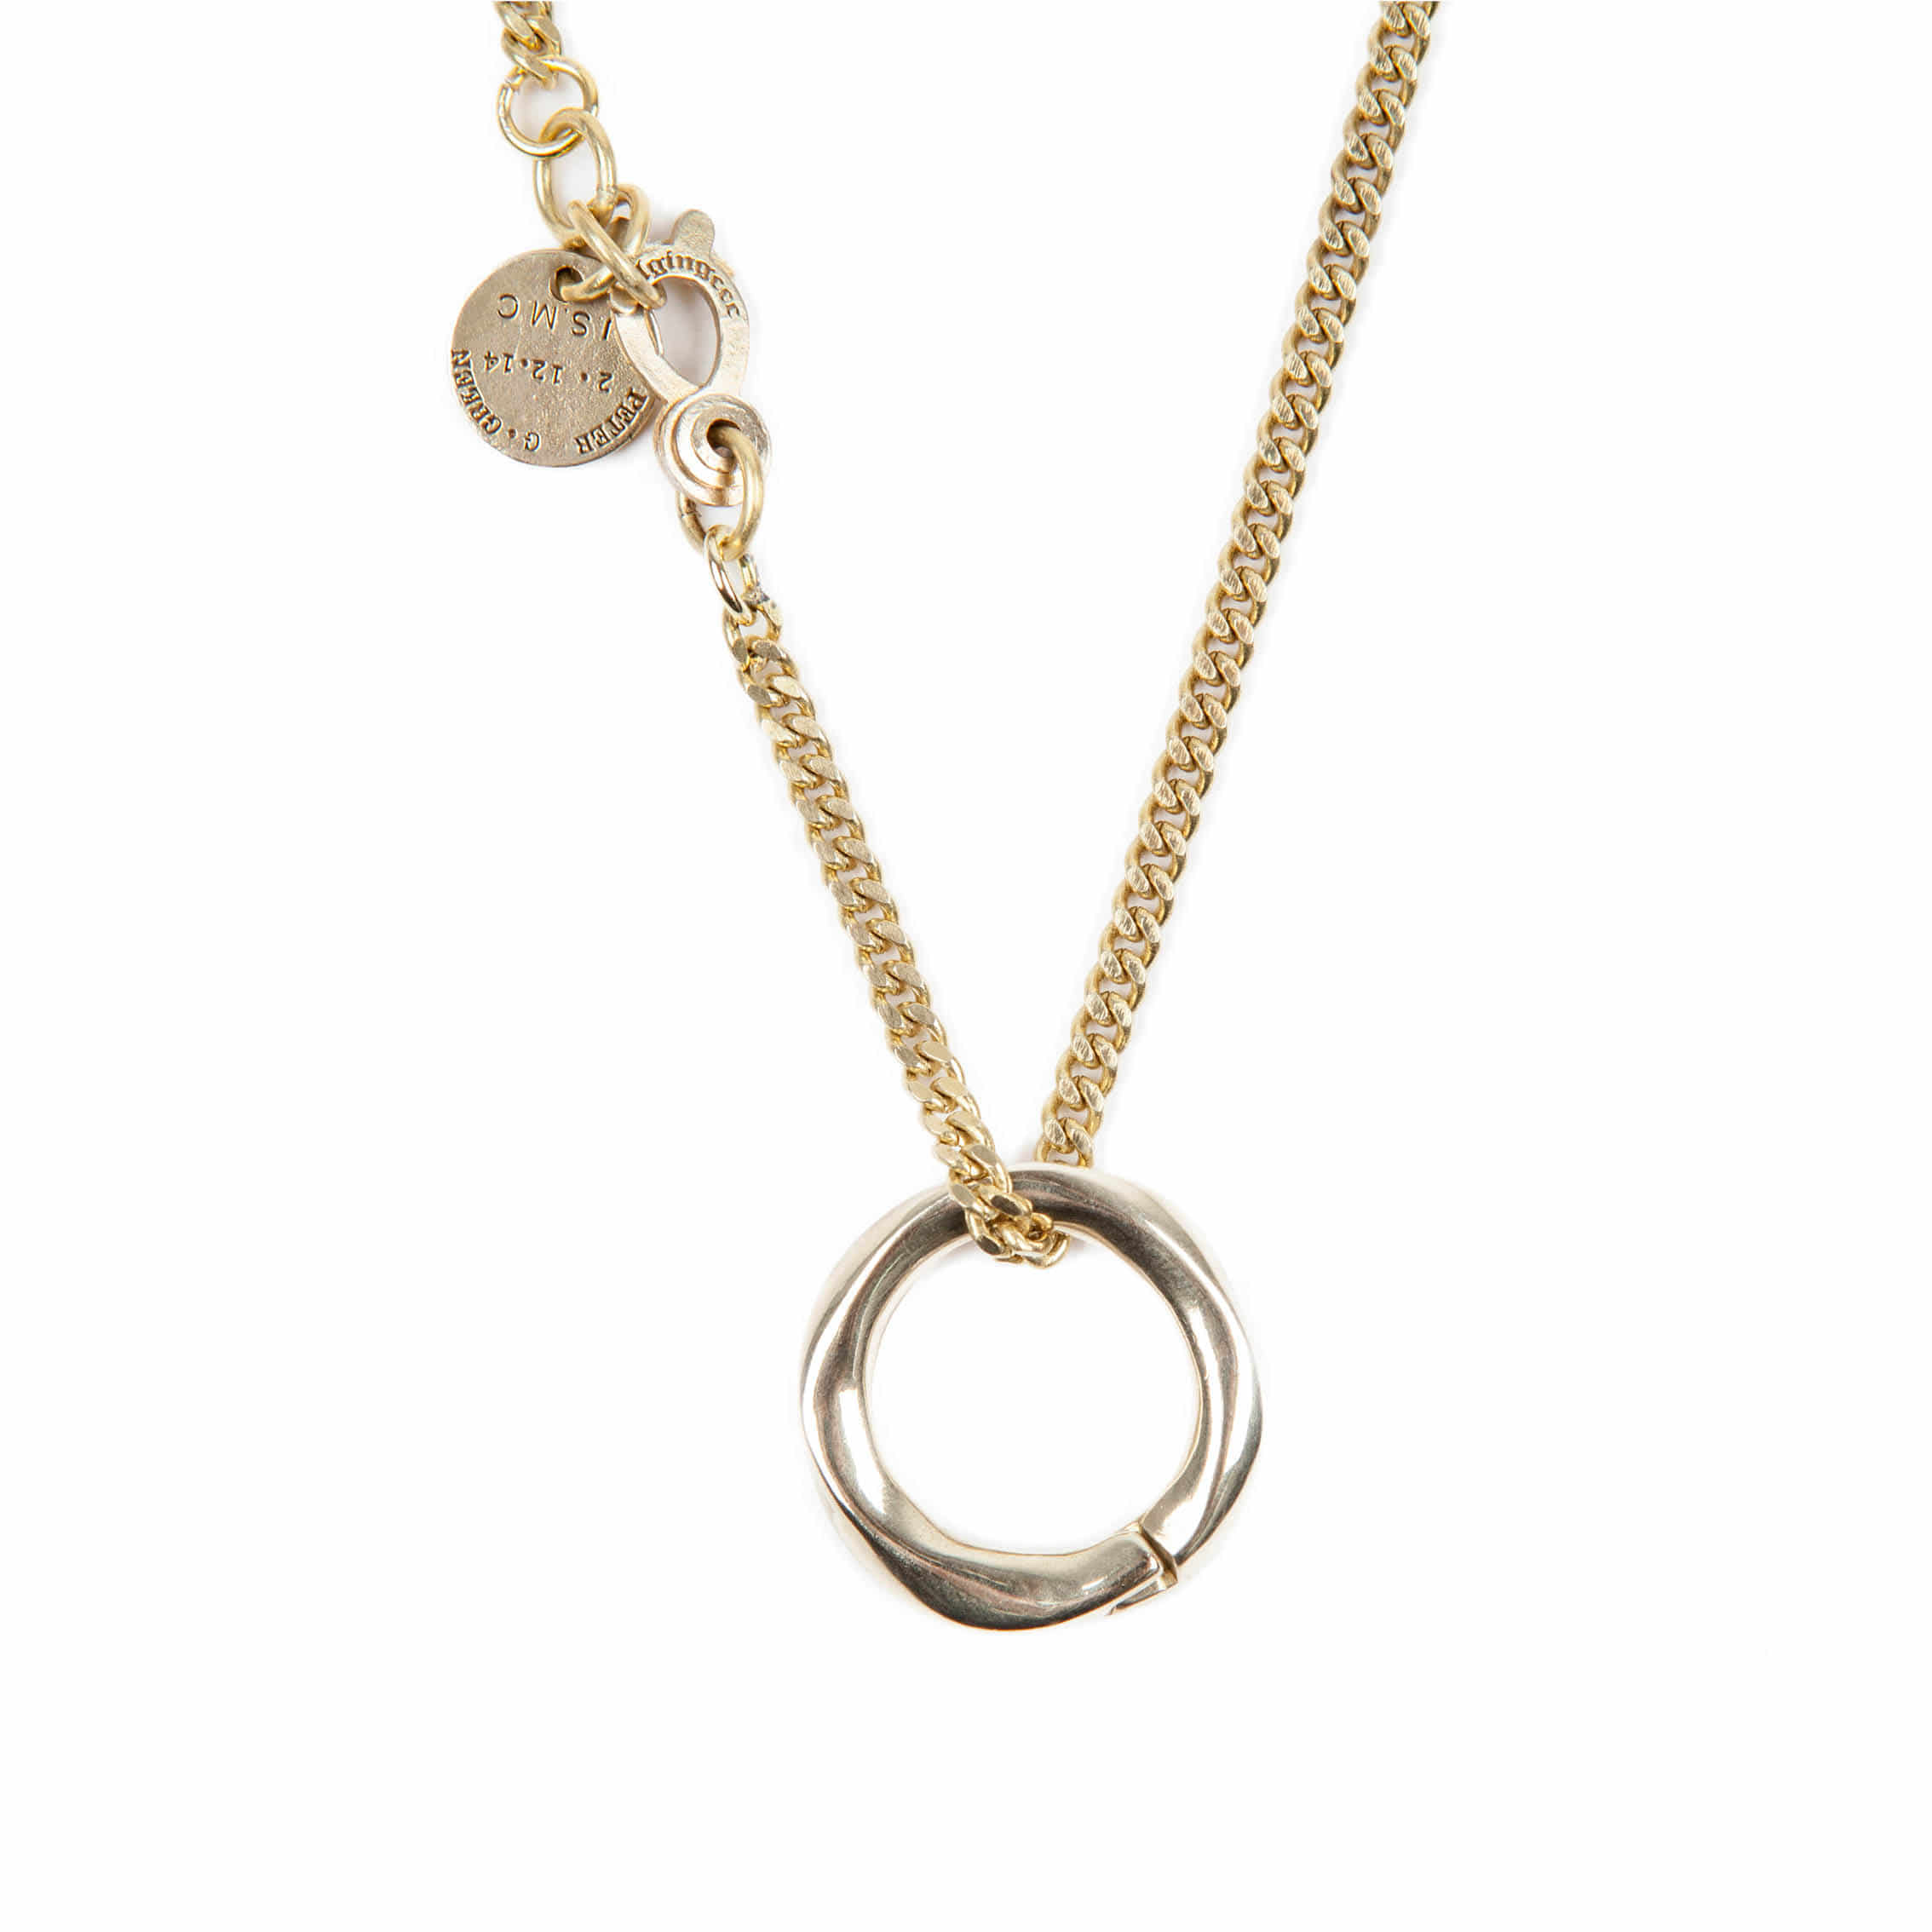 AGINGCCC - 256# SOLIDBRASS RING NECKLACE